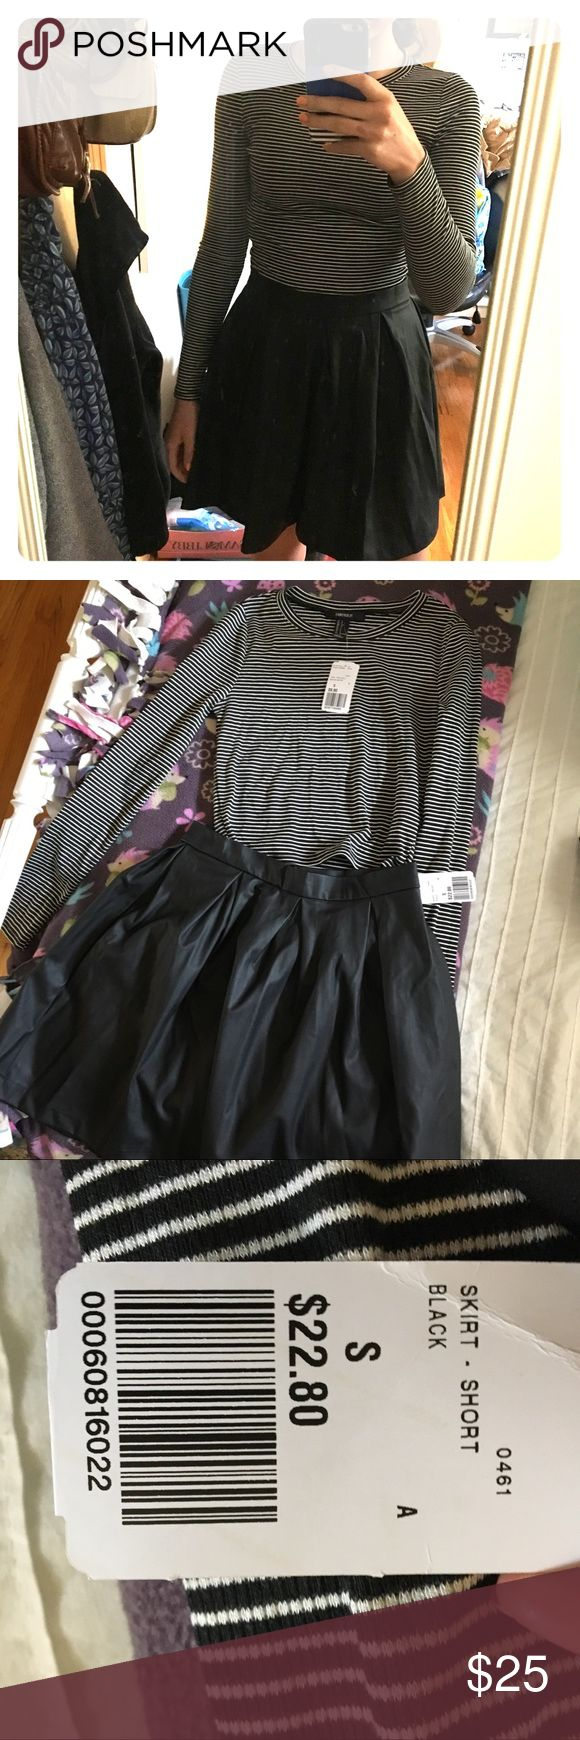 Forever 21 Faux Leather Skirt and Striped Croptop I bought these pieces together last year so I figured I'd sell them together! I am willing to separate if you only want one of the two pieces, but the set would look so cute as just a casual look or you could dress it up for dinner! The skirt is really comfortable because it has a silk lining and the shirt is cropped but when worn with the skirt no midriff is shown. Forever 21 Skirts